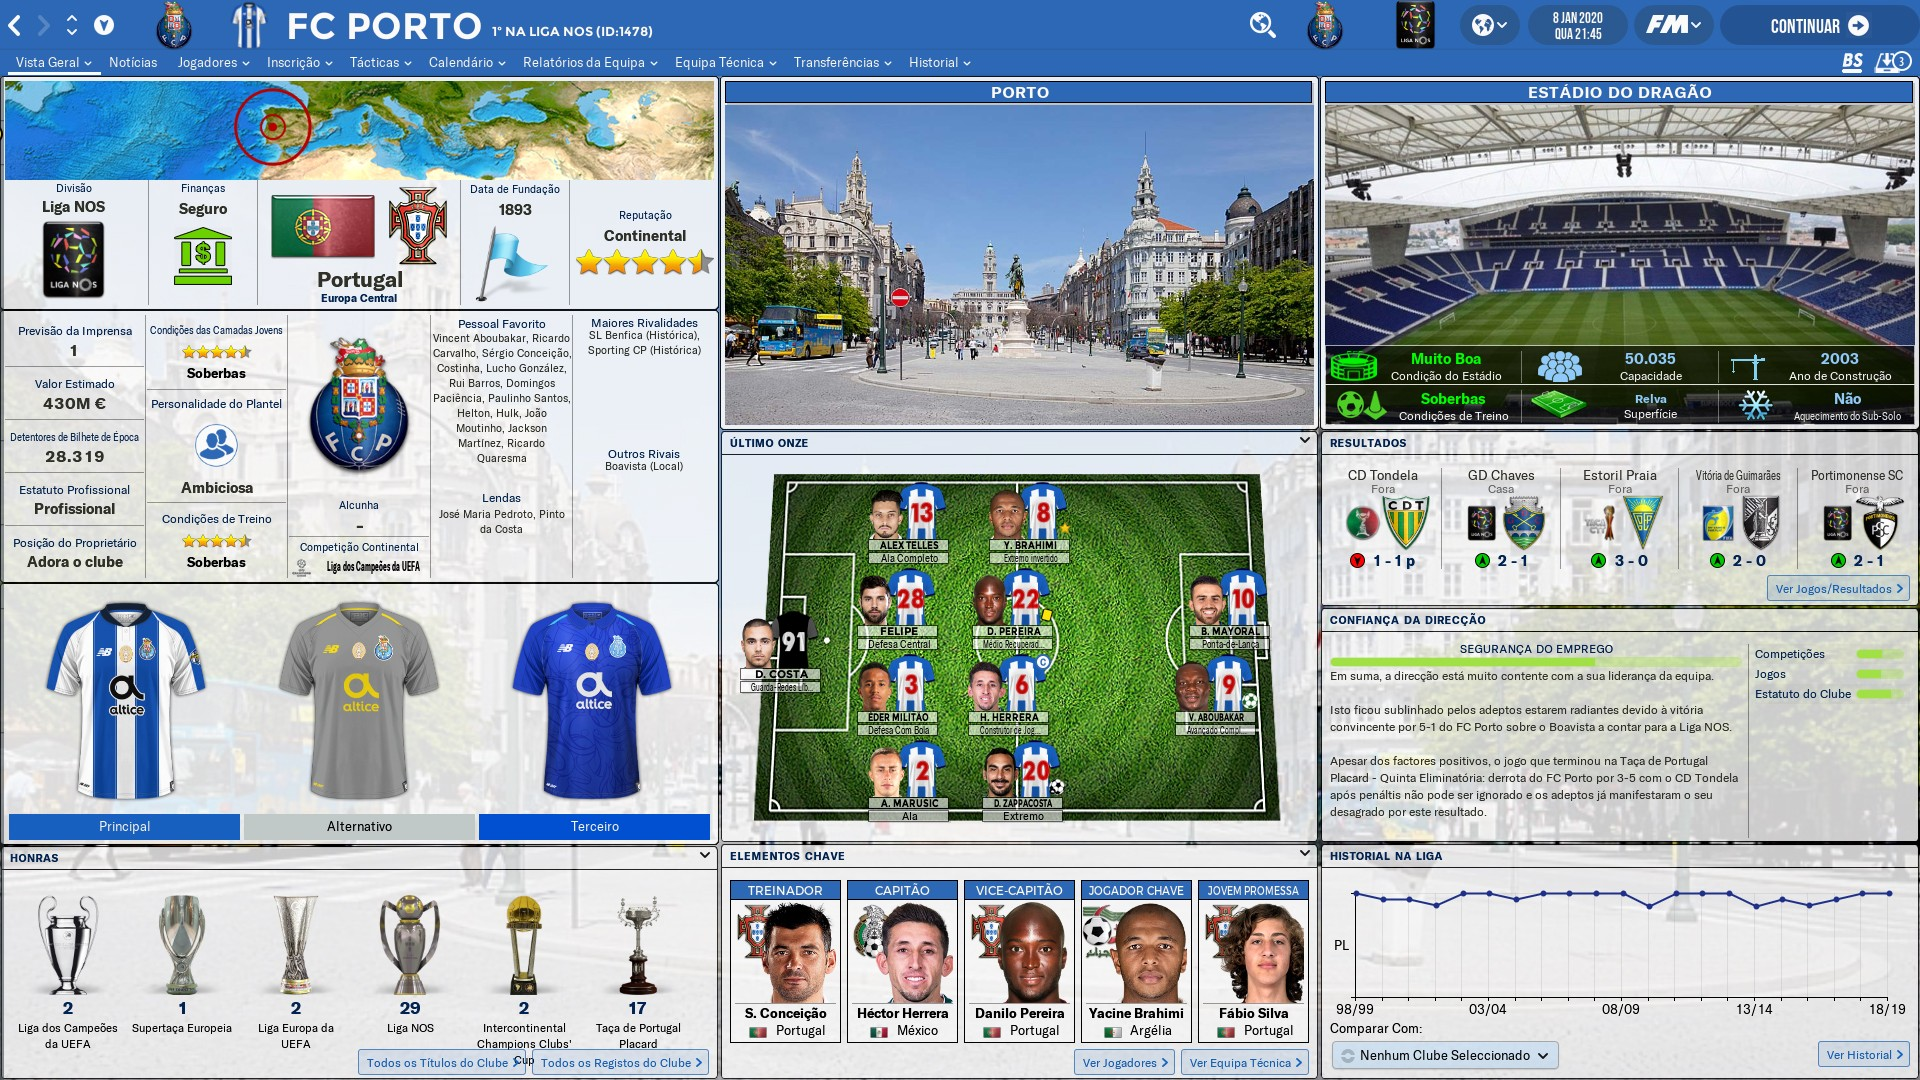 Football Manager 2019 Skins - FM 2019 FLUT skin light - Version 1.9